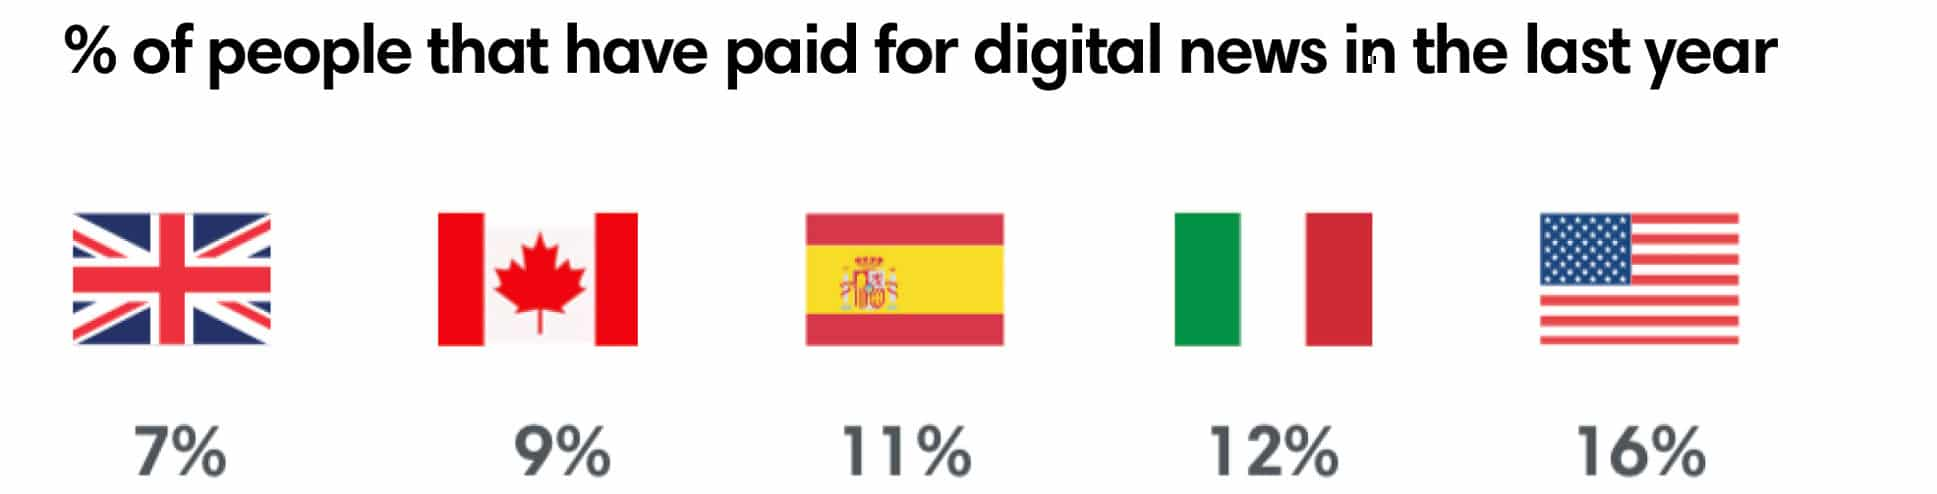 % of people that have paid for digital news in the last year